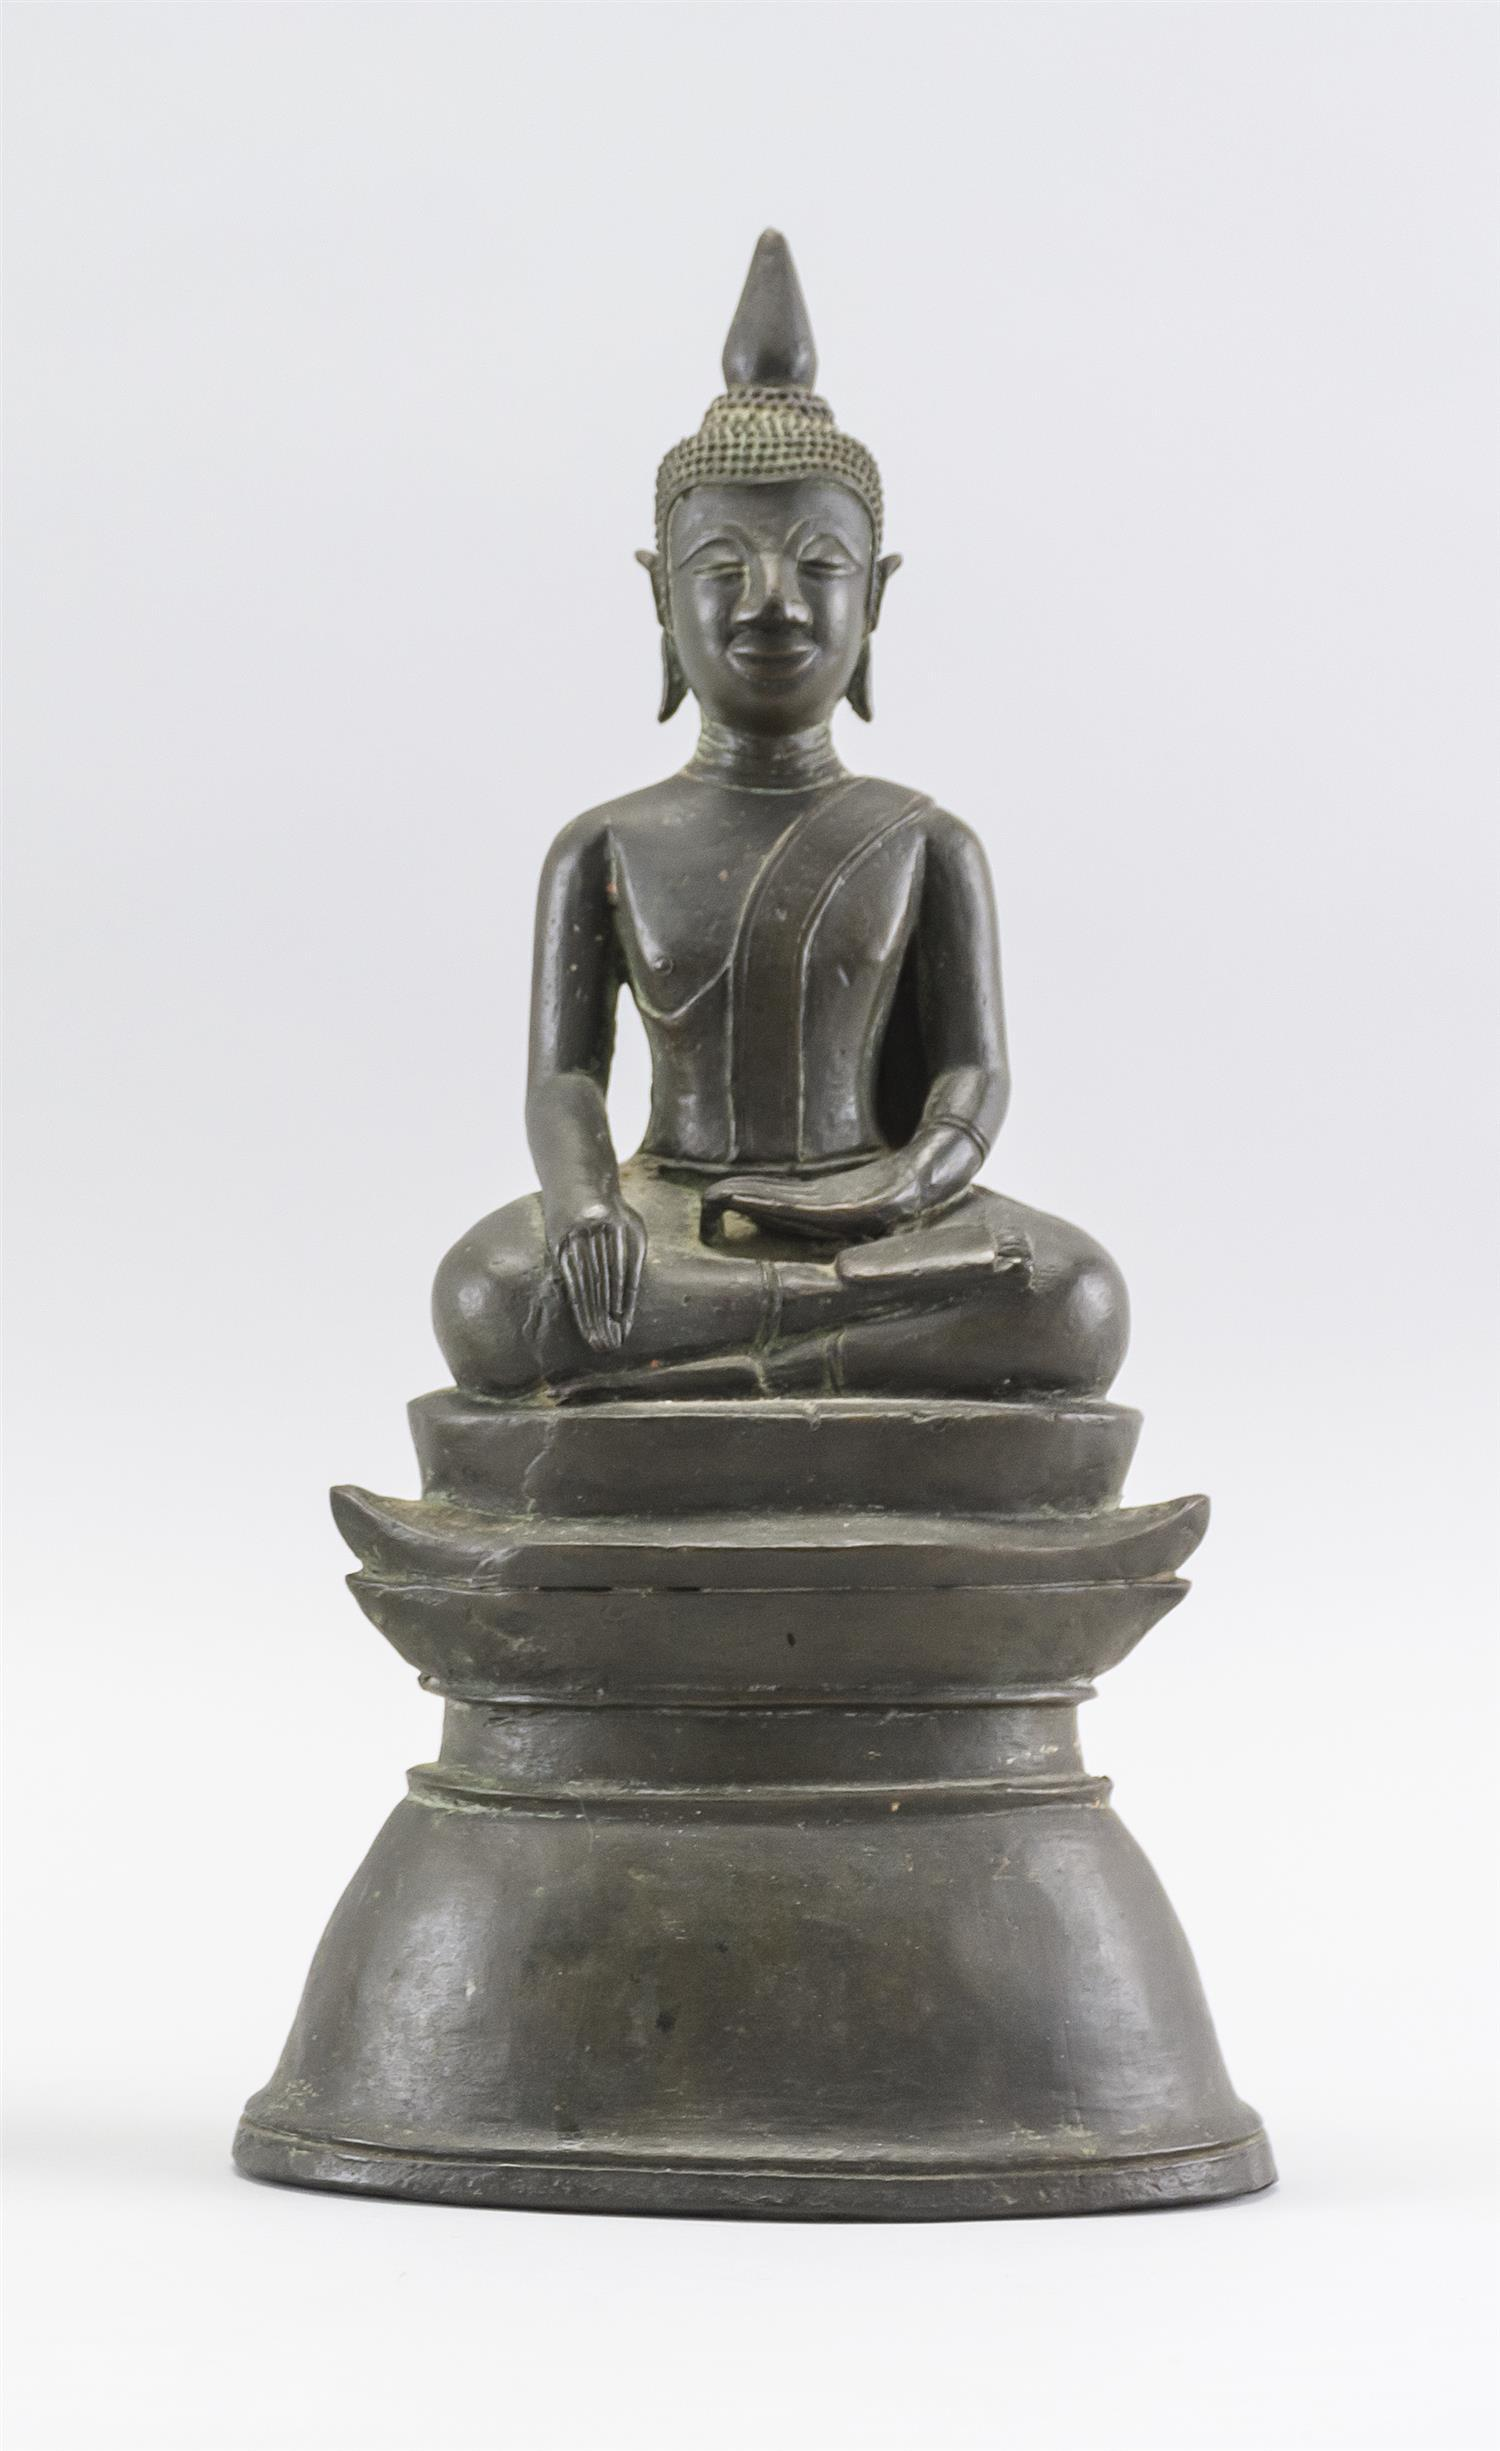 "TIBETAN BRONZE FIGURE OF BUDDHA Seated in an earth touching position on a raised oval base. Height 11.5""."